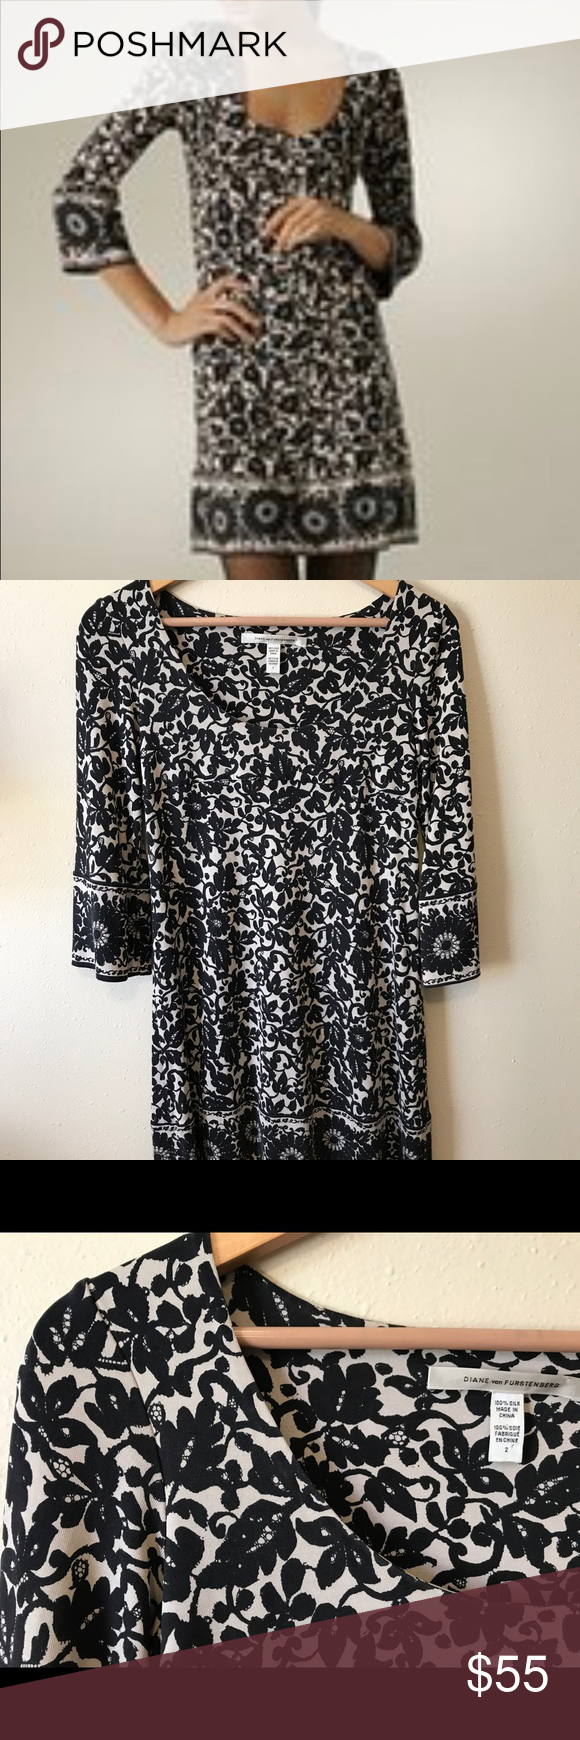 "DVF Floral Black White Laetitia Silk Shift Dress Size 2. Excellent used condition! 100% Silk. Approximate Measurements (laying flat): Bust: 16"" Length: 31 1/2"" Hips: 18 1/4"" Diane Von Furstenberg Dresses Mini"